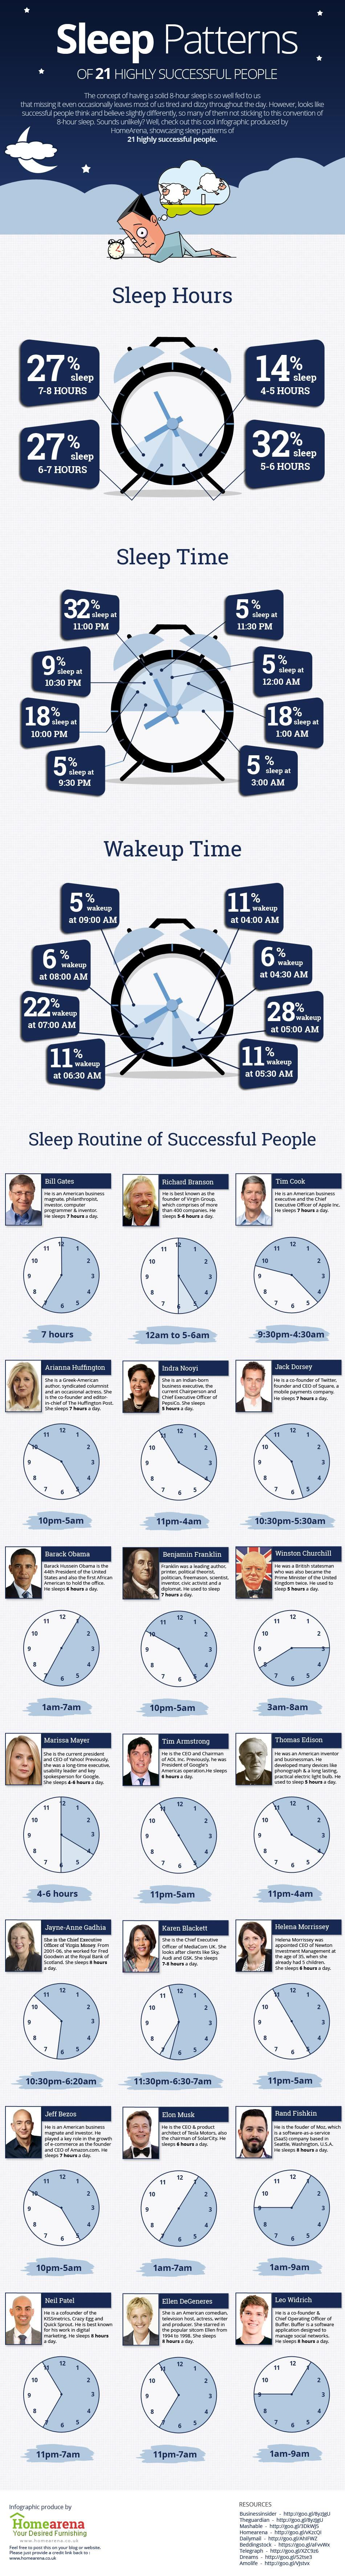 Sleeping(Infographic)